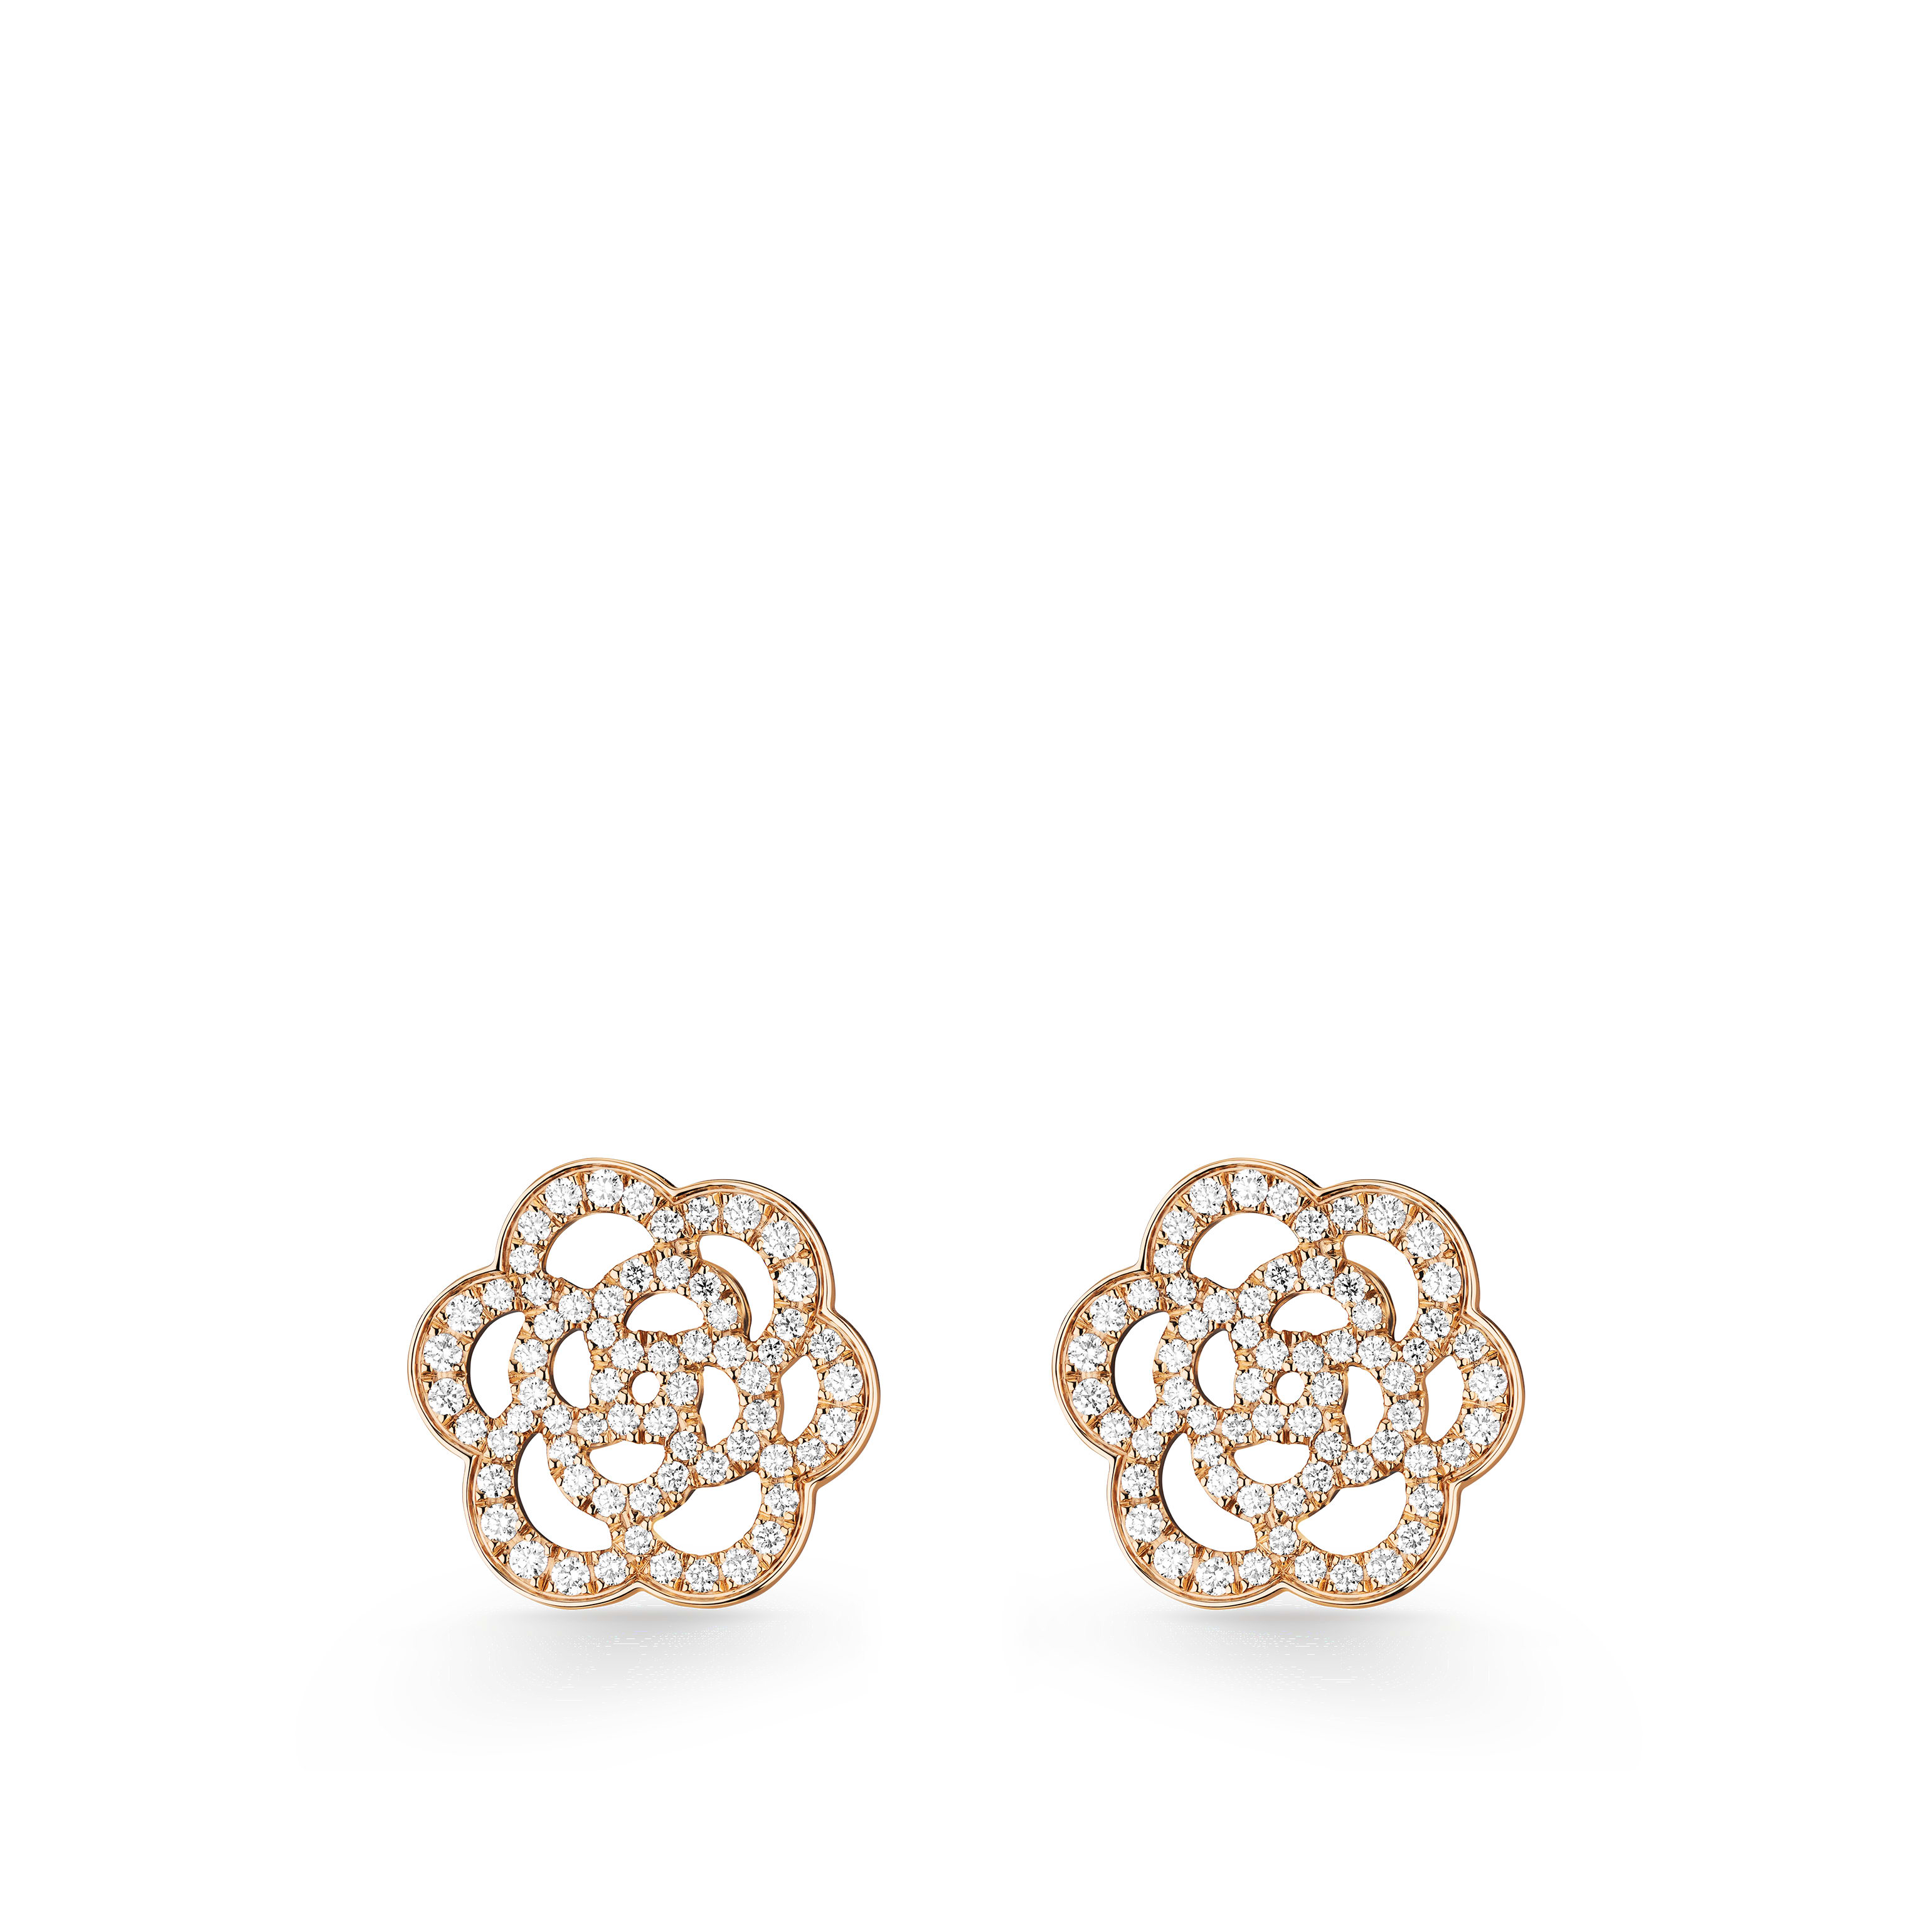 Camélia Ajouré earrings - 18K pink gold, diamonds - CHANEL - Default view - see standard sized version